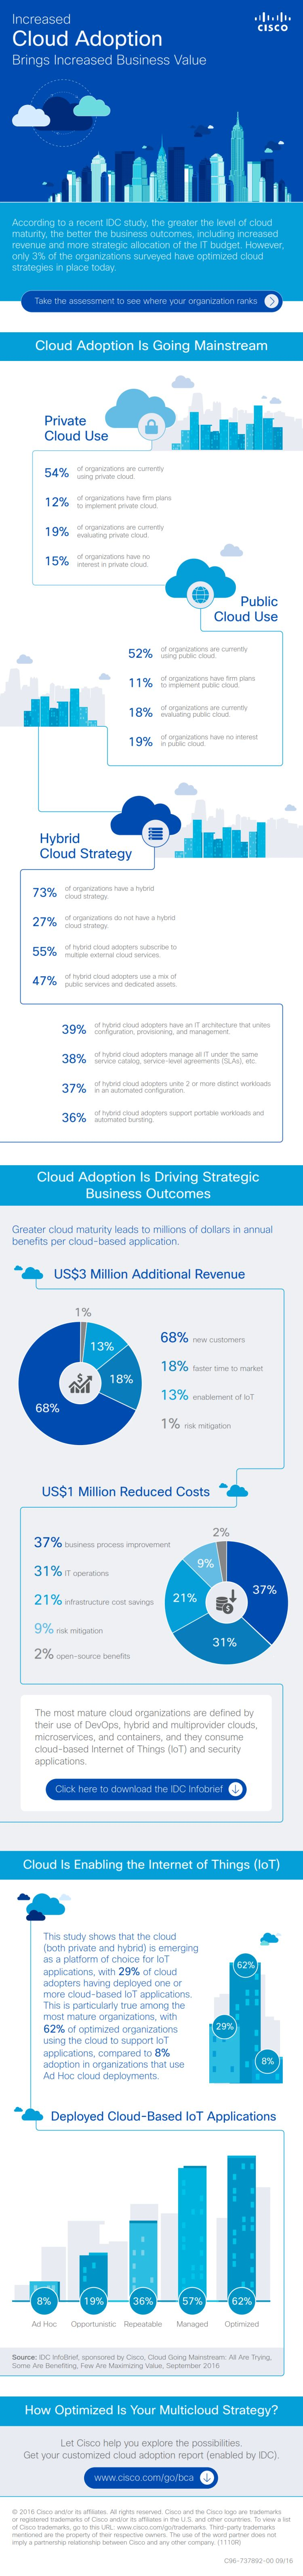 cloud-infographic-adoption-cloudtweaks